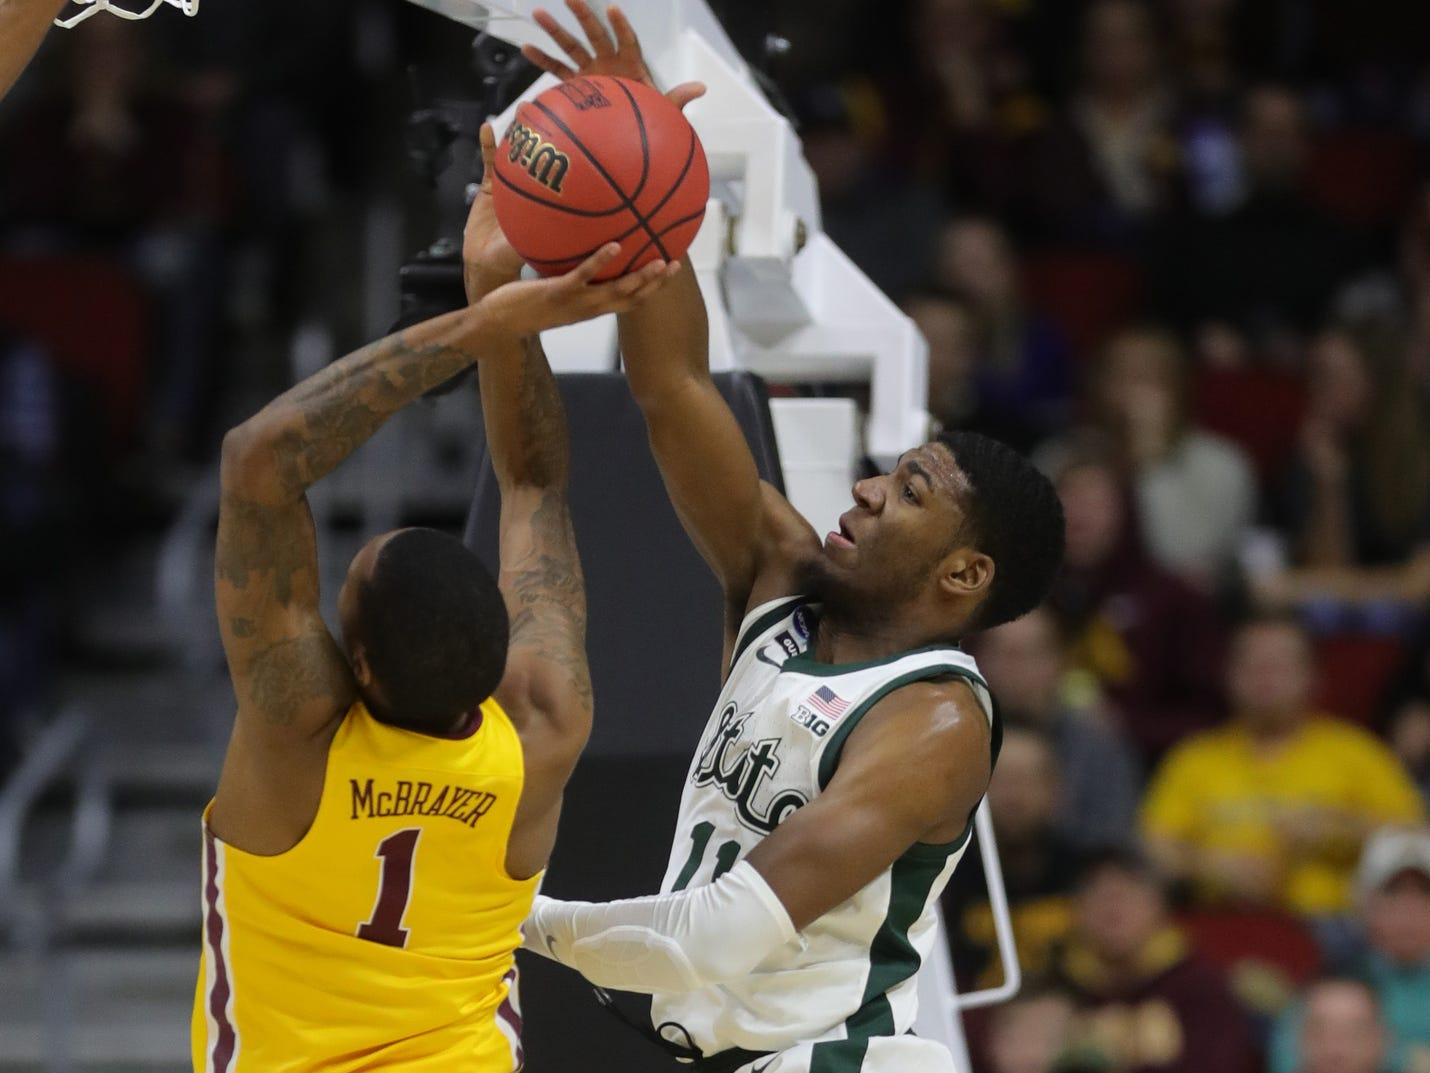 Michigan State's Aaron Henry blocks a shot by Minnesota's Dupree McBrayer in the second half of their second round NCAA tournament game Saturday, March 23, 2019 at Wells Fargo Arena in Des Moines, Iowa.